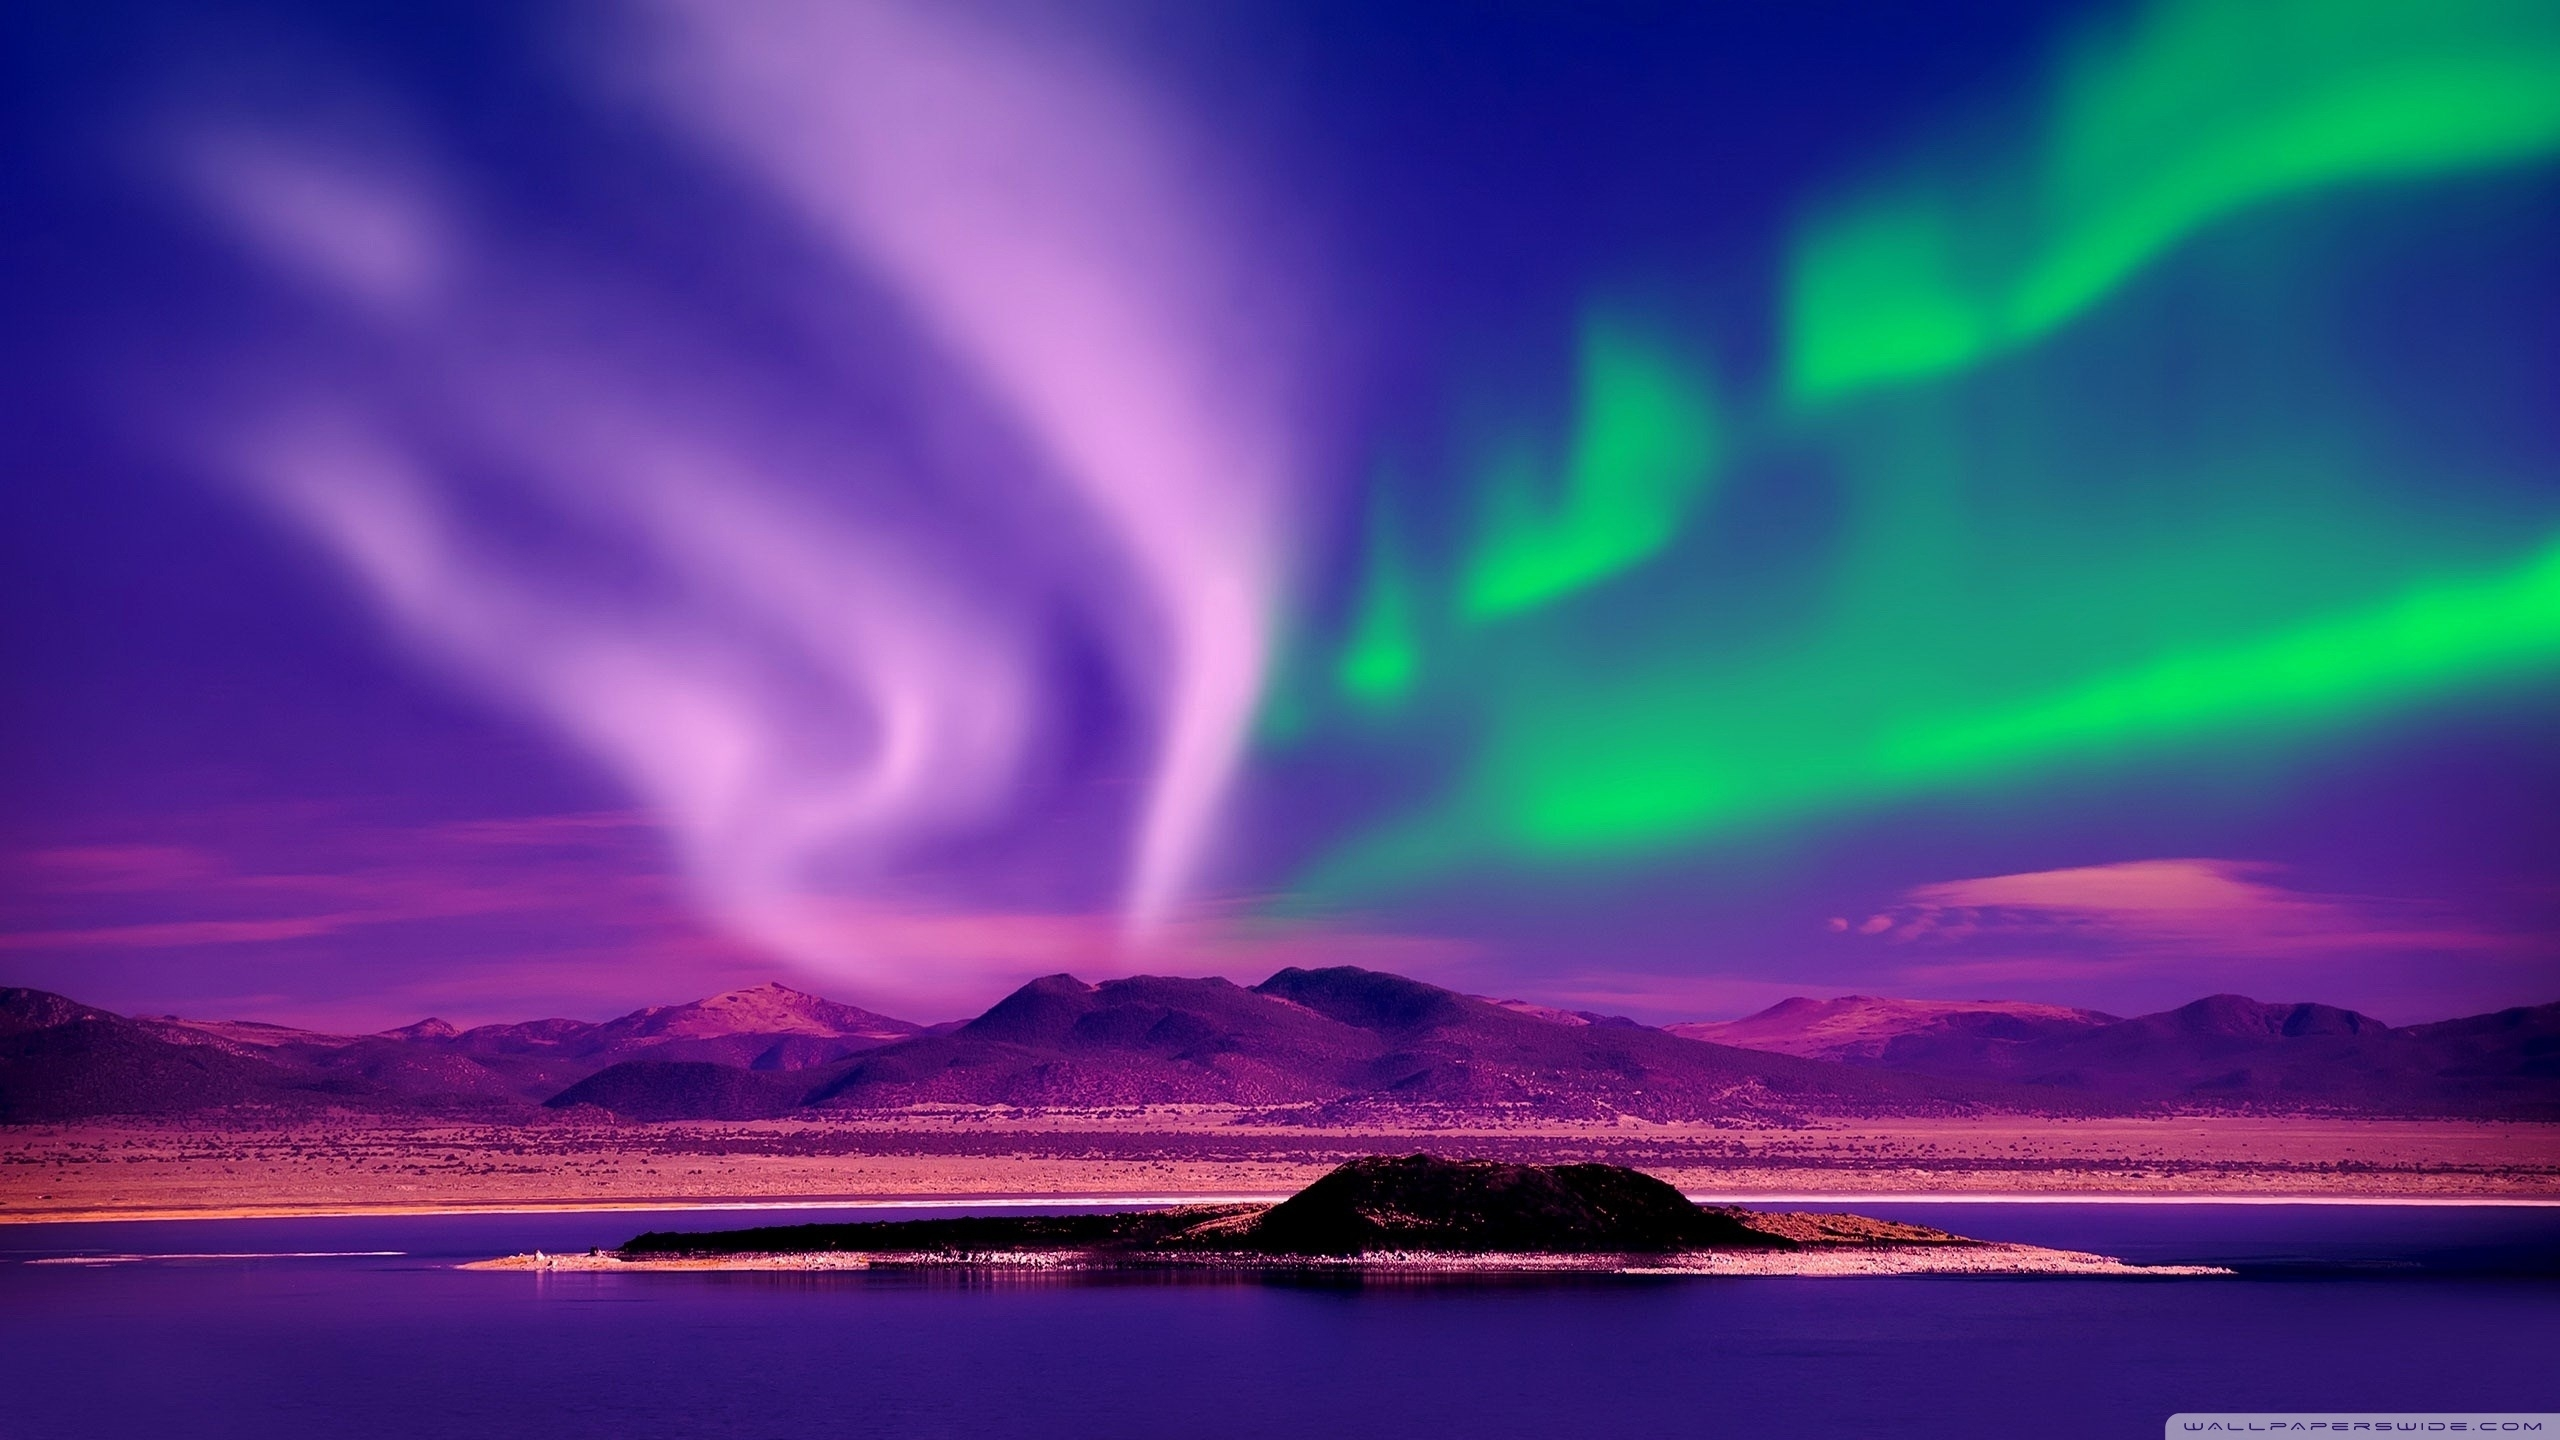 aurora borealis ❤ 4k hd desktop wallpaper for 4k ultra hd tv • wide